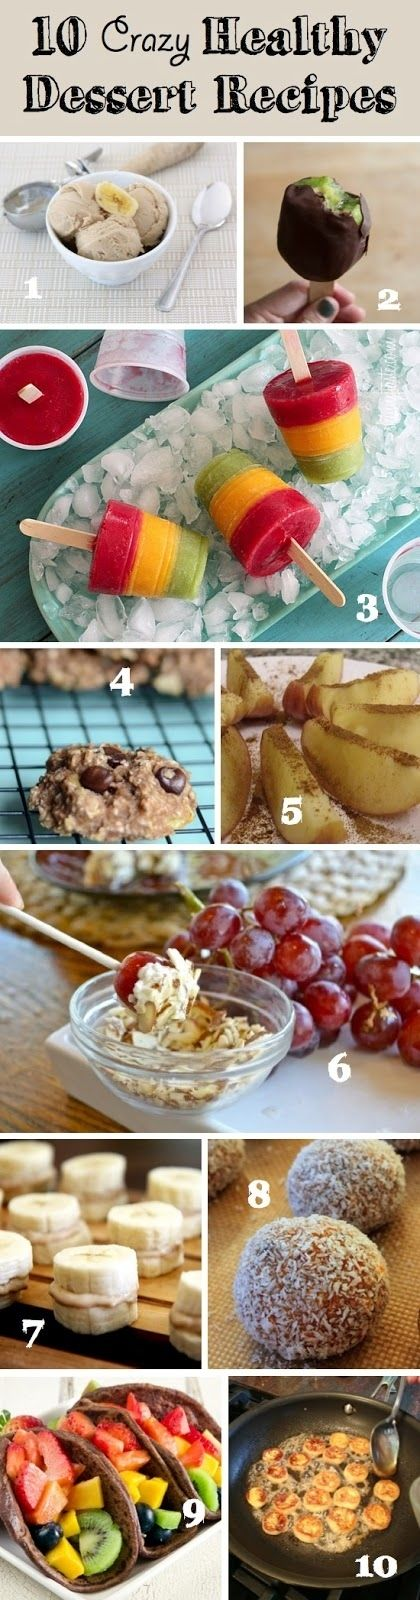 90 Yummy Healthy Dessert Recipes Ideas Recipes Healthy Dessert Healthy Dessert Recipes